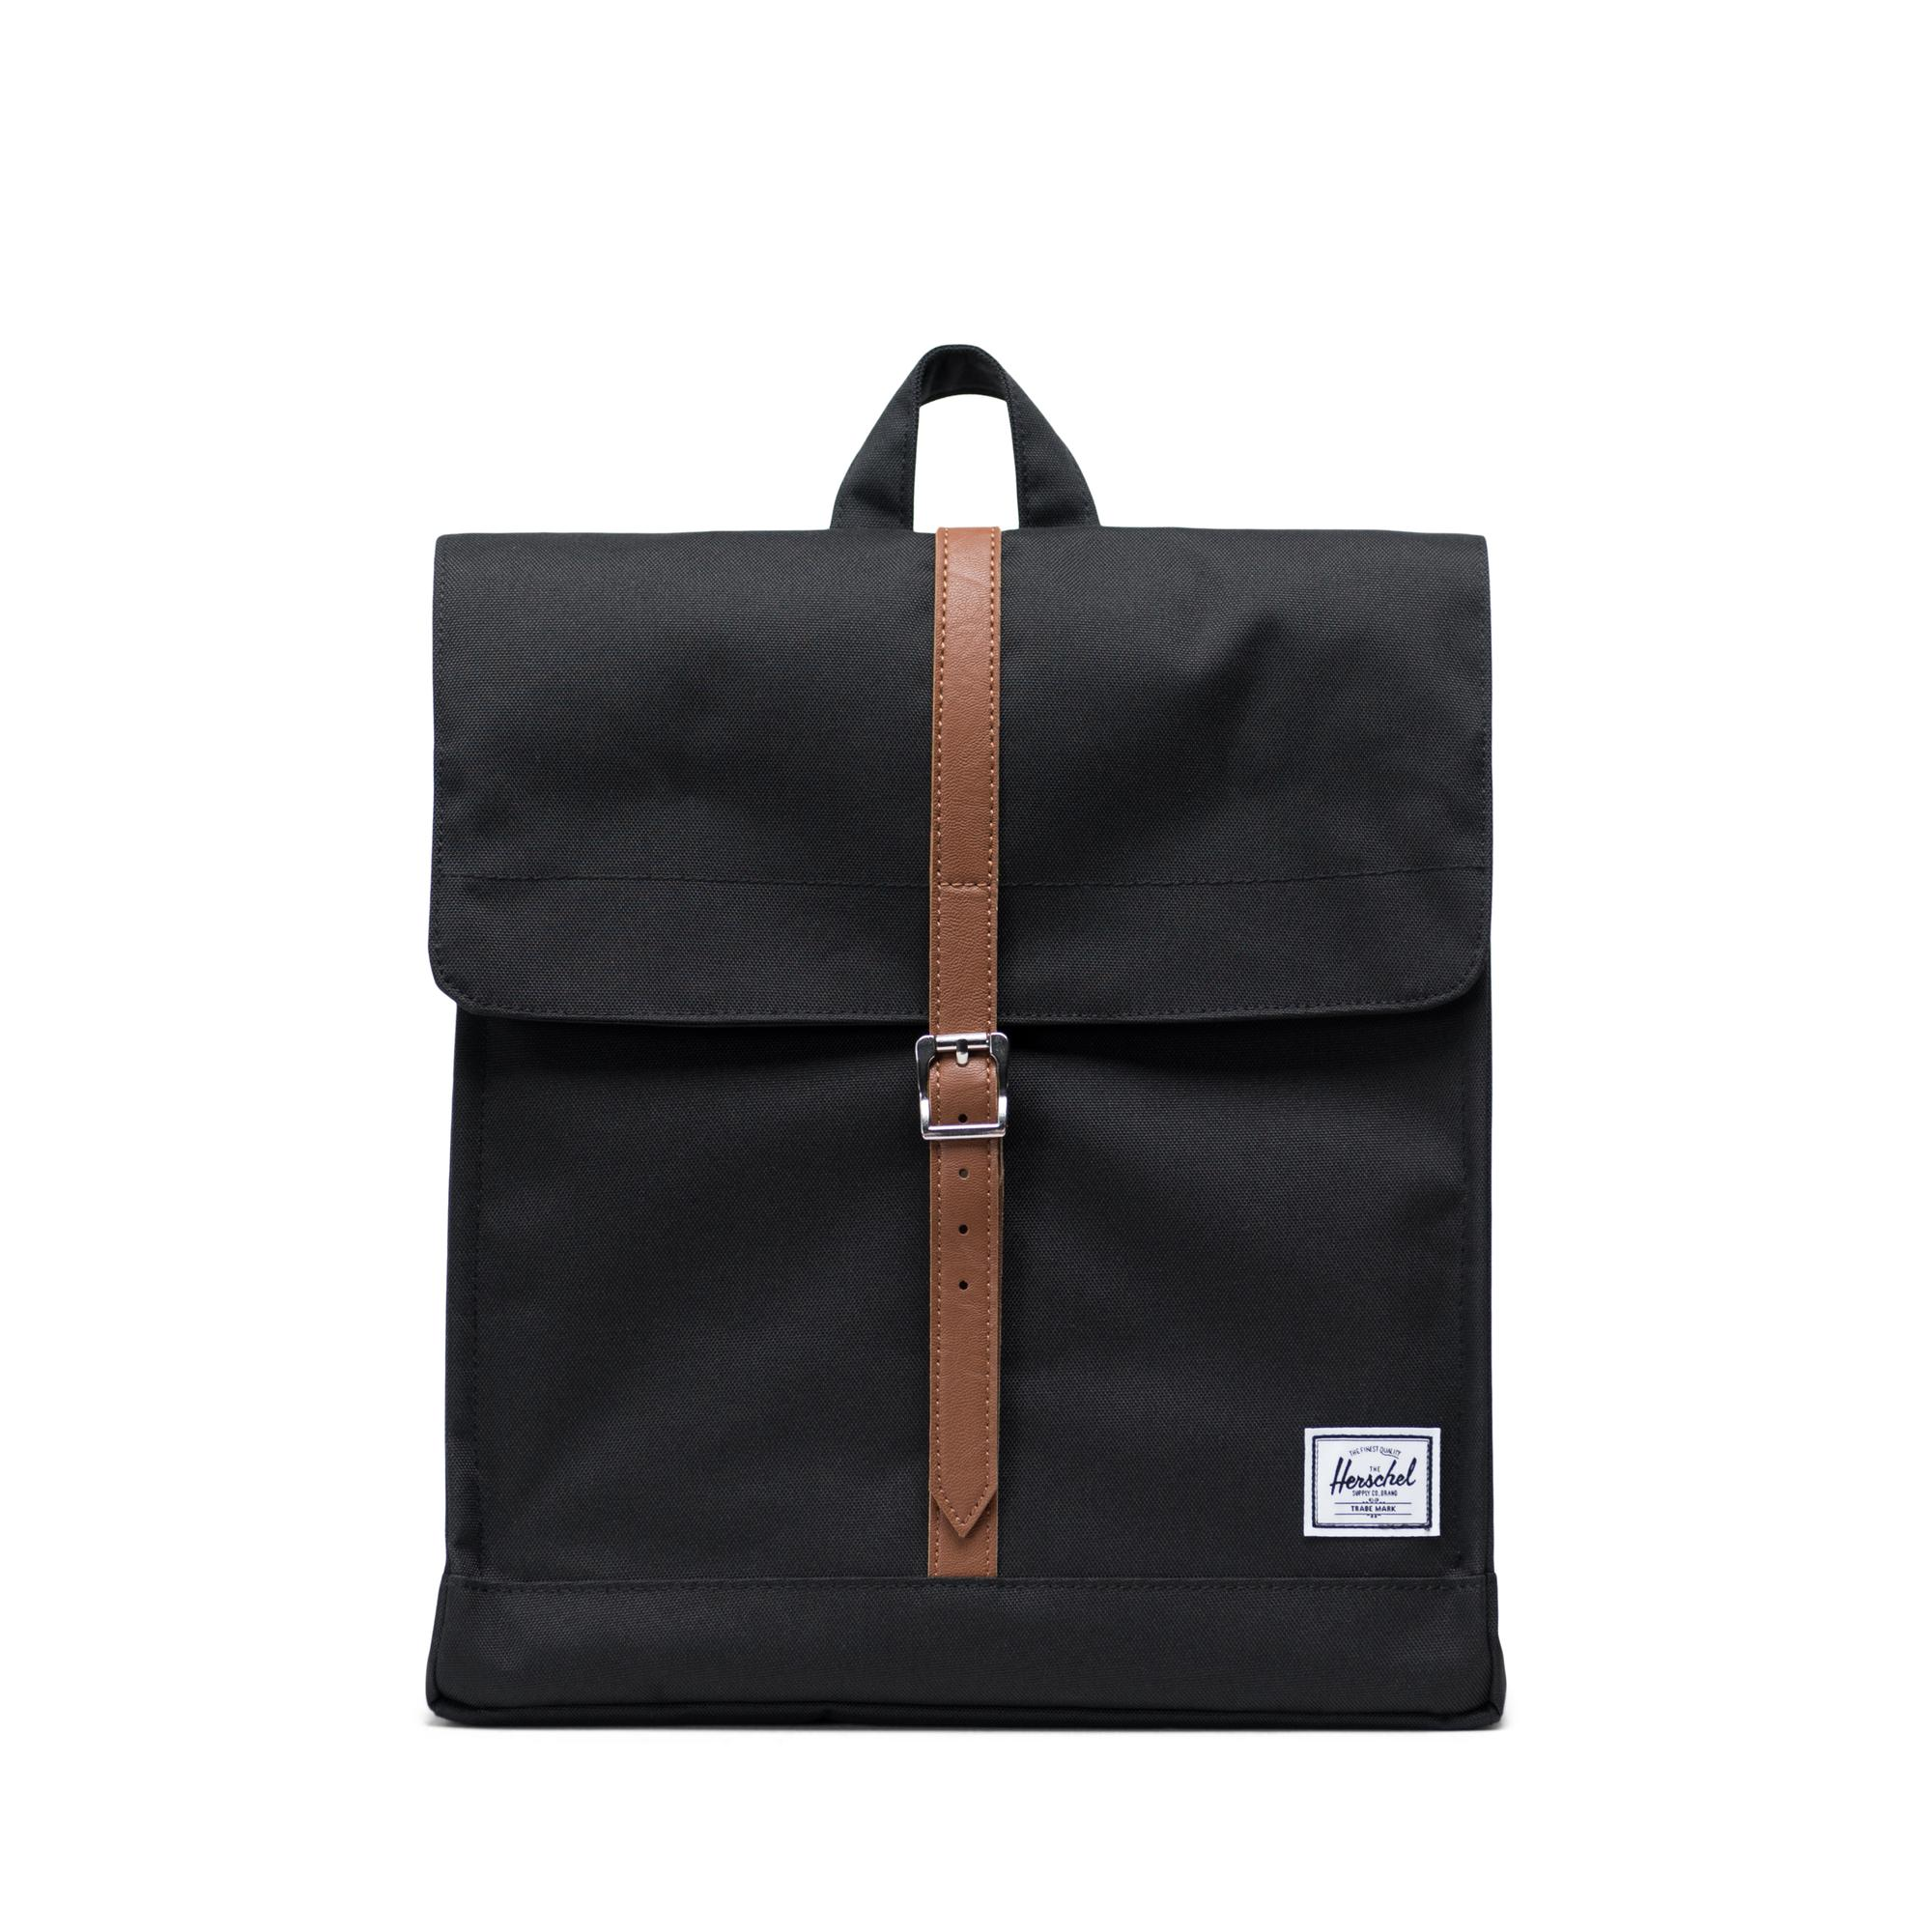 City Backpack Mid-Volume   Herschel Supply Company e05cba4ace